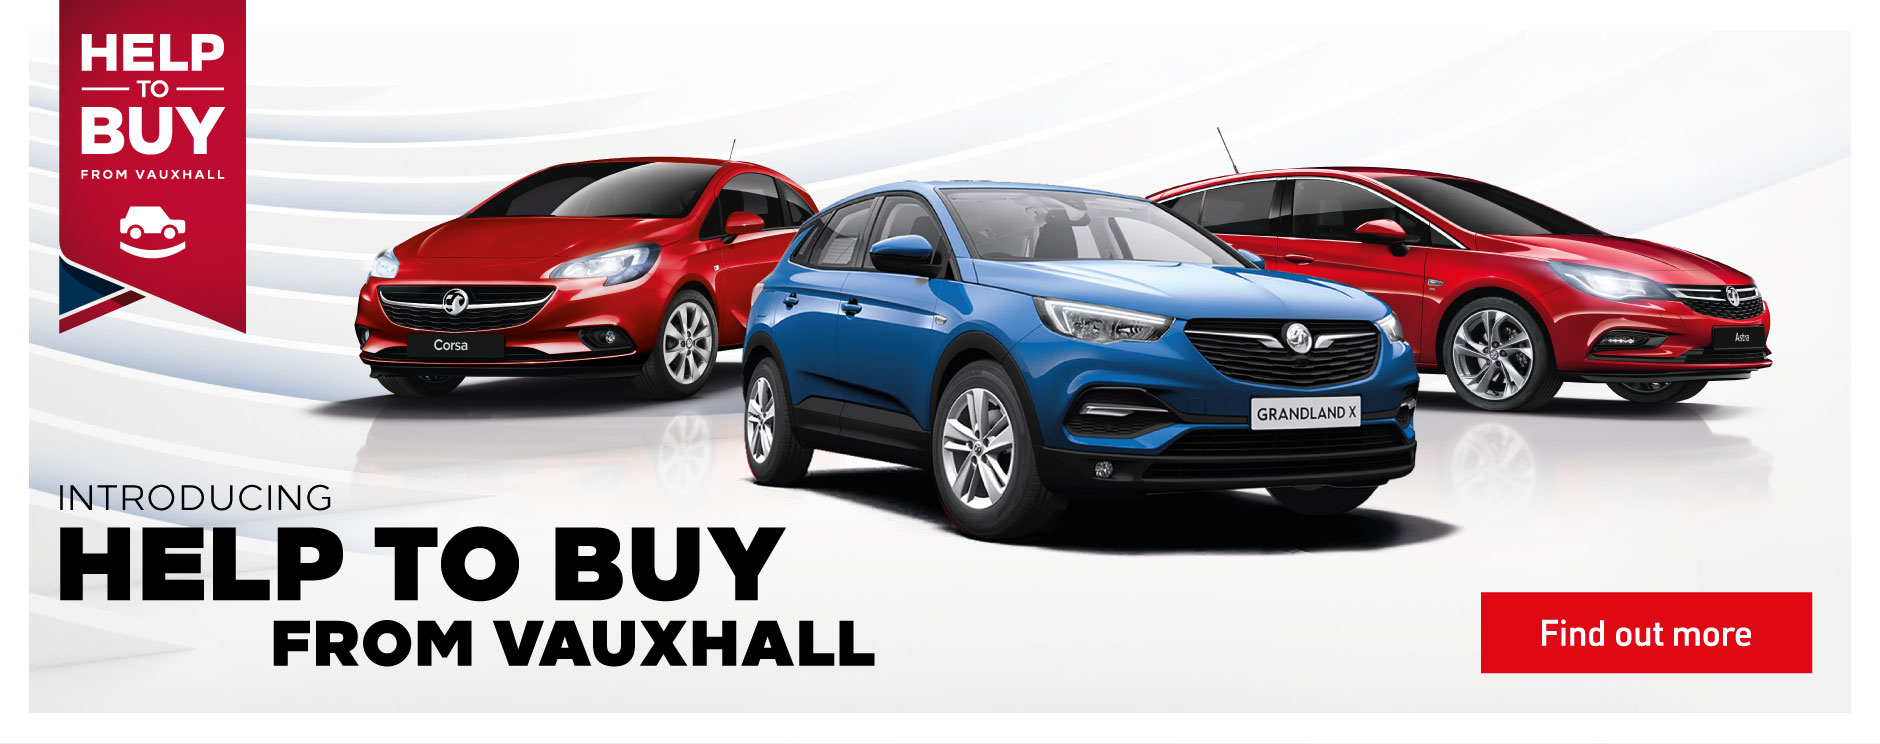 Vauxhall Help to Buy